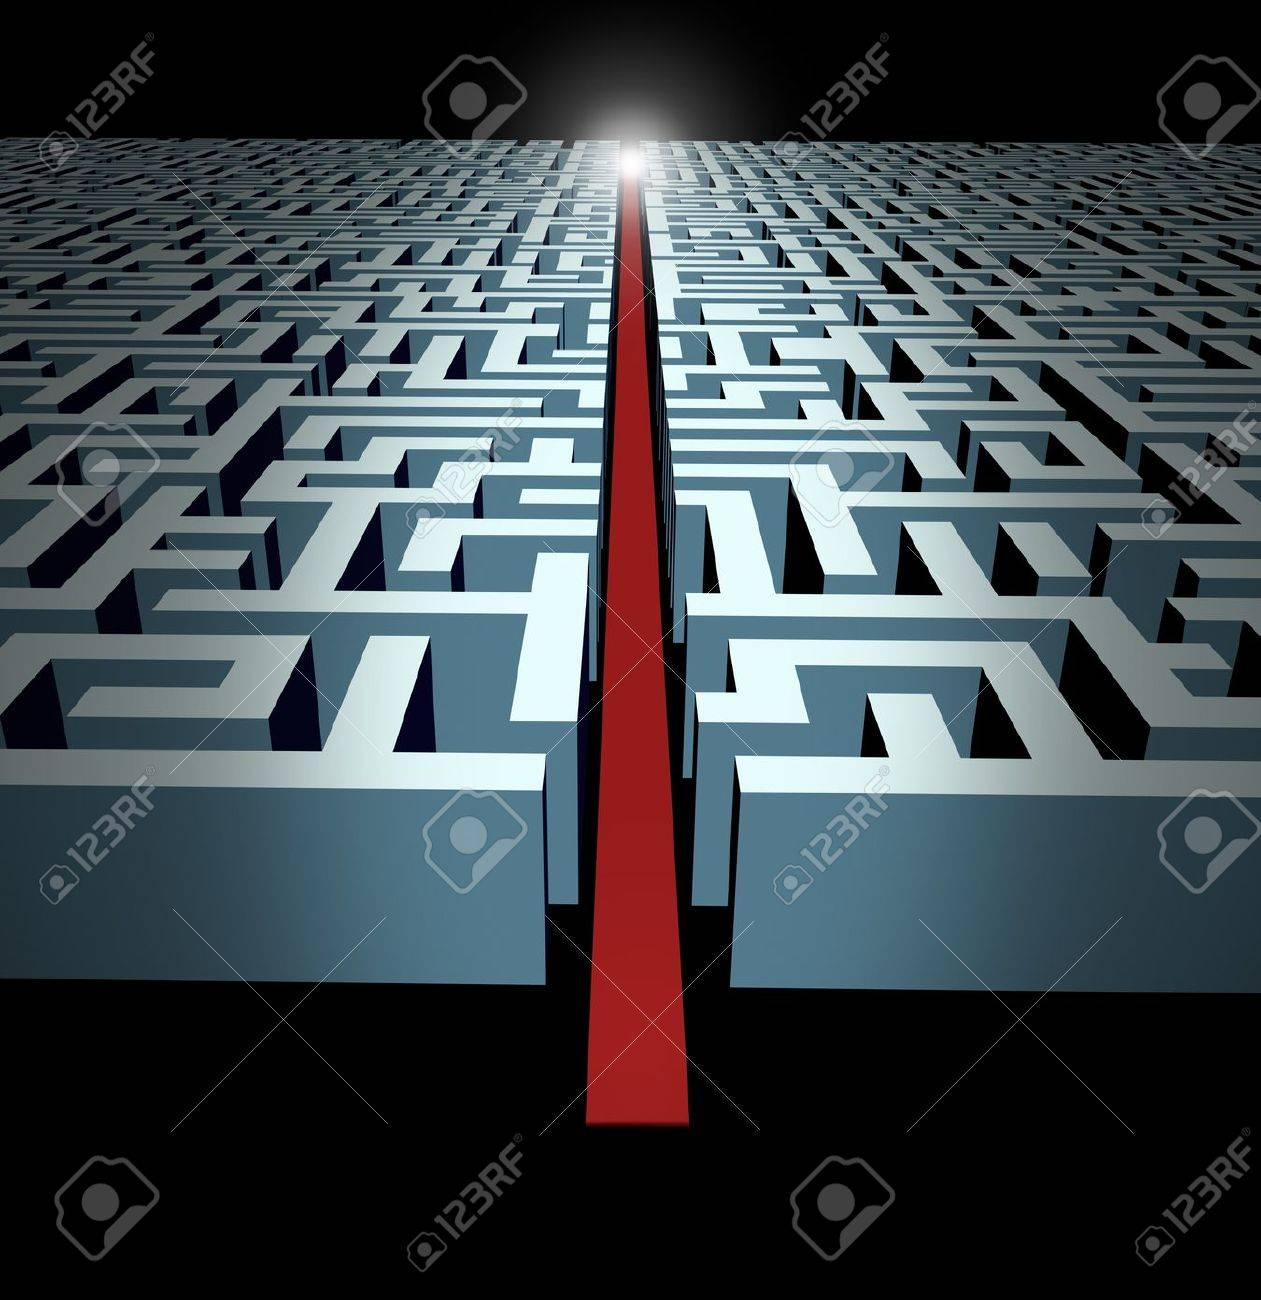 Leadership and strategy through business challenges and obstacles represented by a maze and labyrinth with a clear solution shortcut path opened with a red velvet carpet to lead the way to success and victory. Stock Photo - 11221478